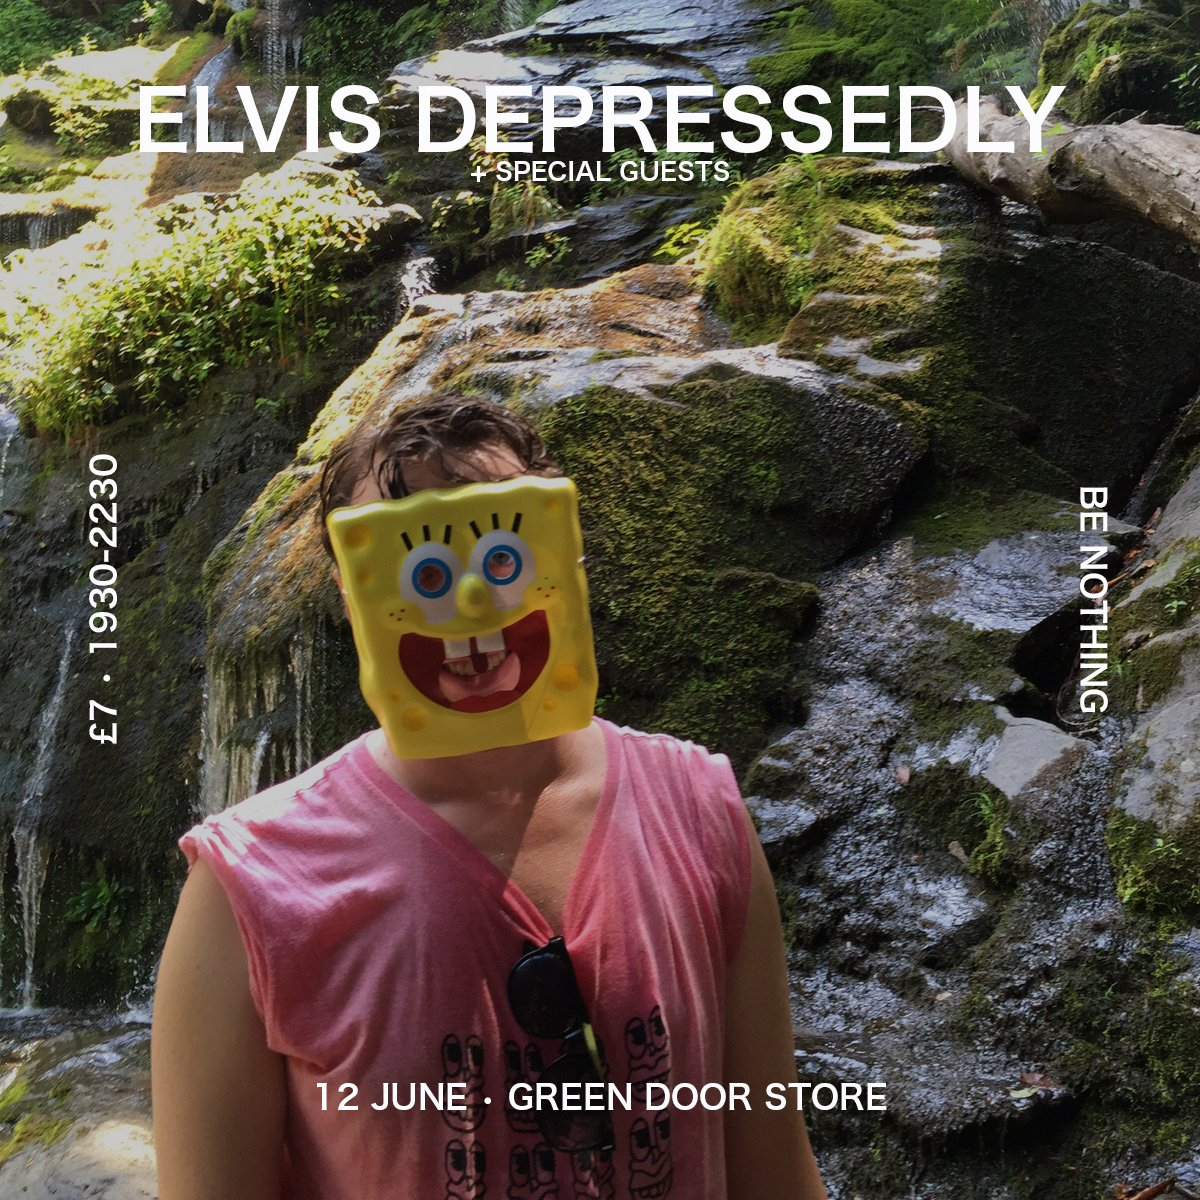 TONIGHT: Elvis Depressedly +@porridgeradio @Max_of_cats  1900-2230 / £7 / cash only bar c/o Chris Green/@BE_NOTHING https://t.co/kCZLFnNGUV